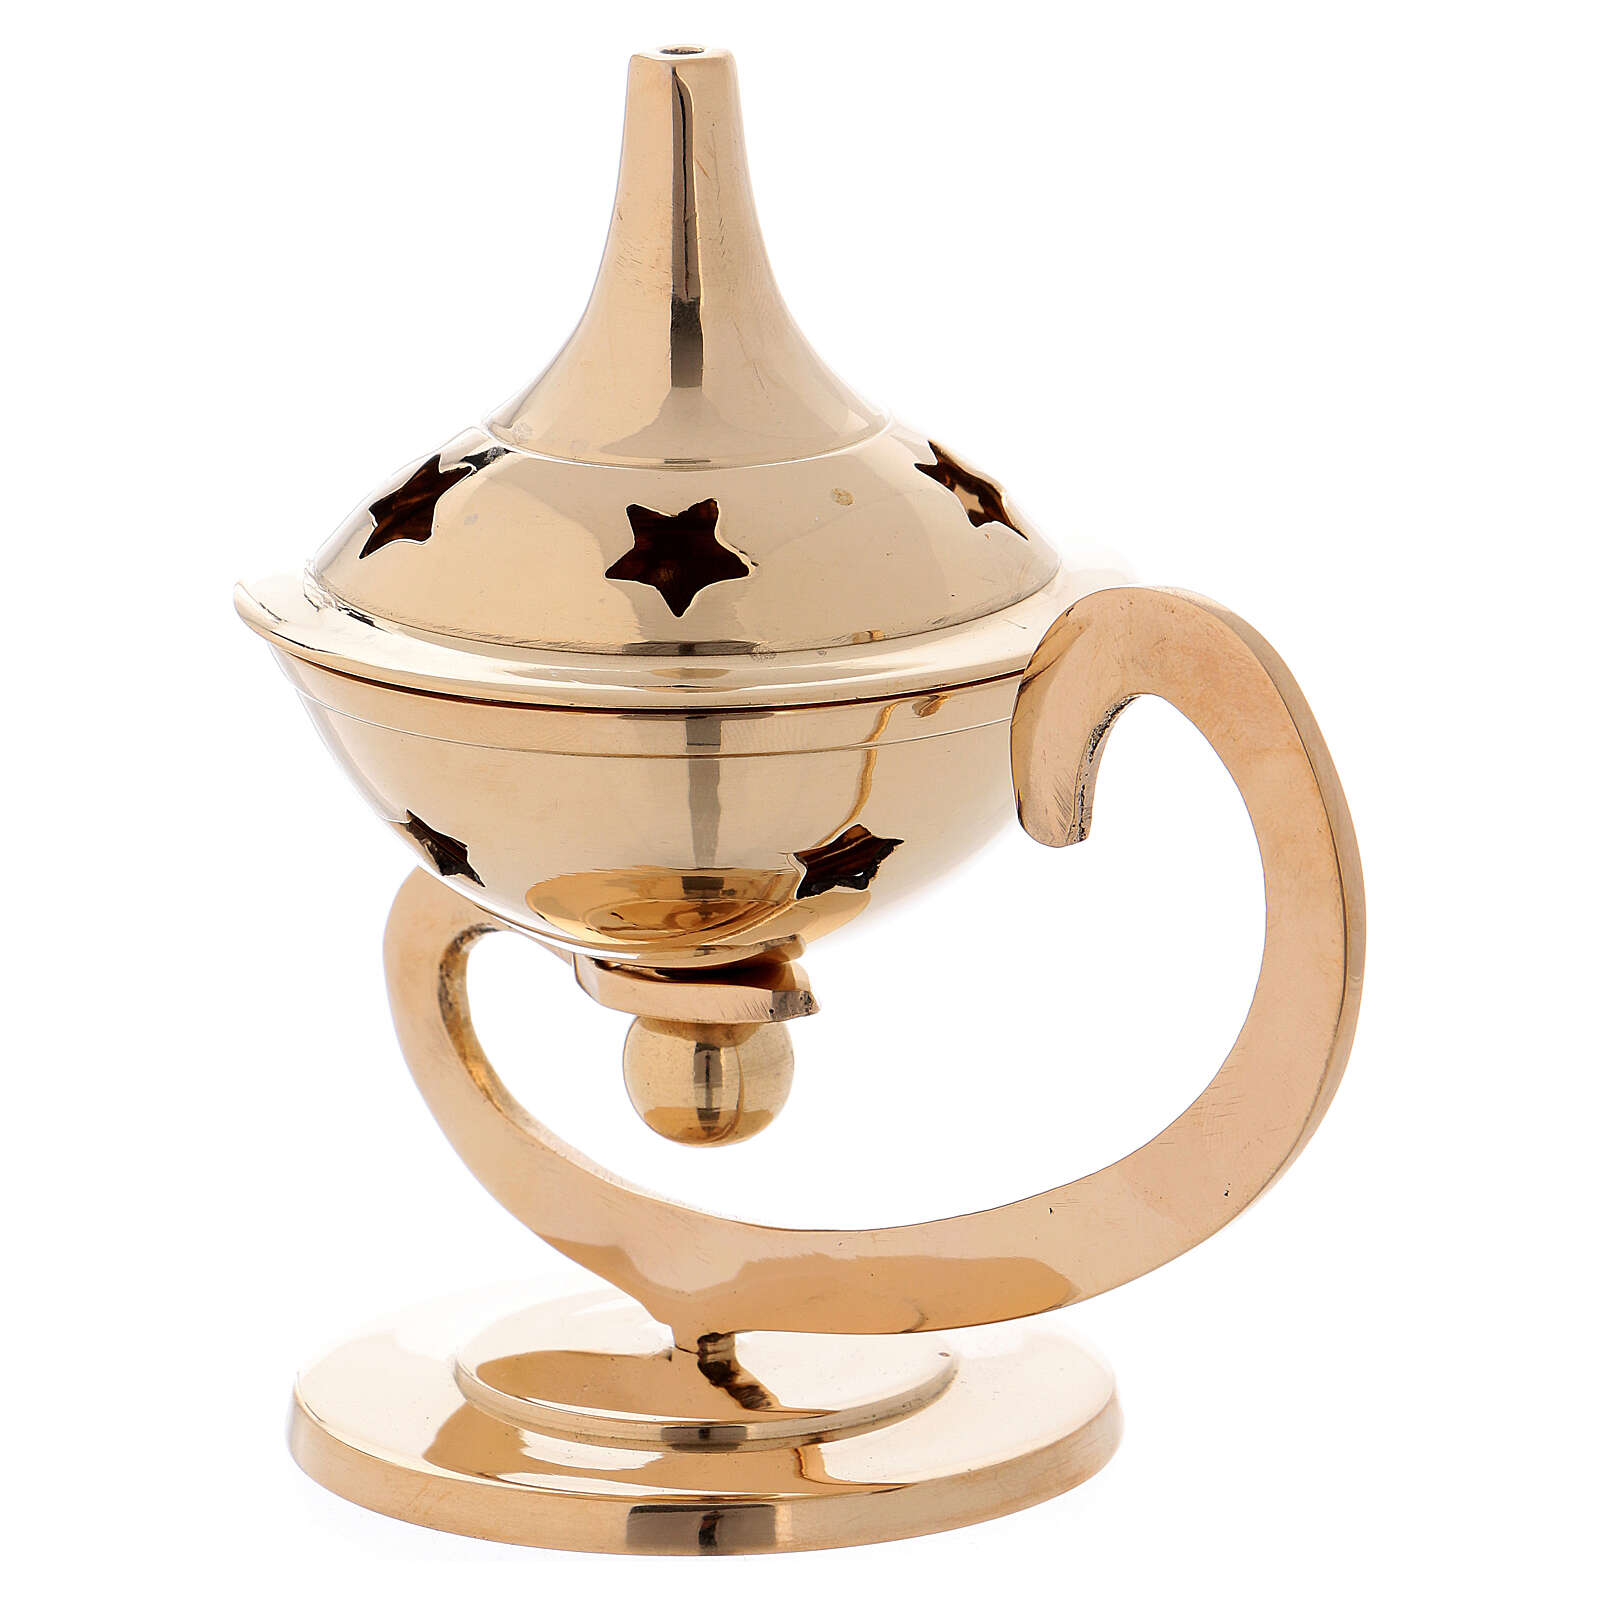 Incense burner in gold plated polish brass decorated top 3